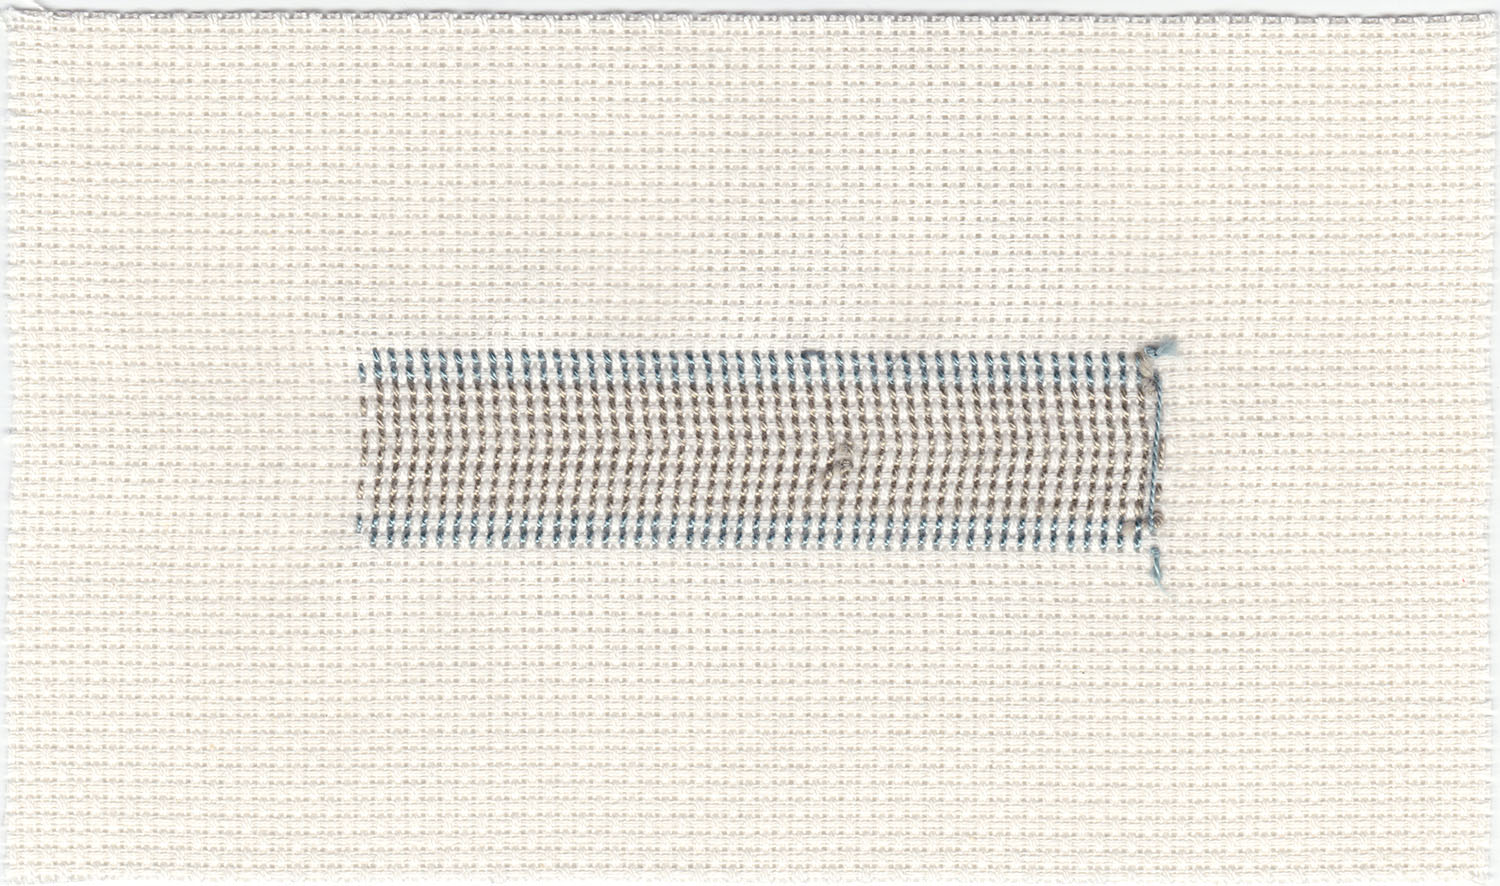 Colour Study in 576 Diagonal Stitches_6B_web.jpg